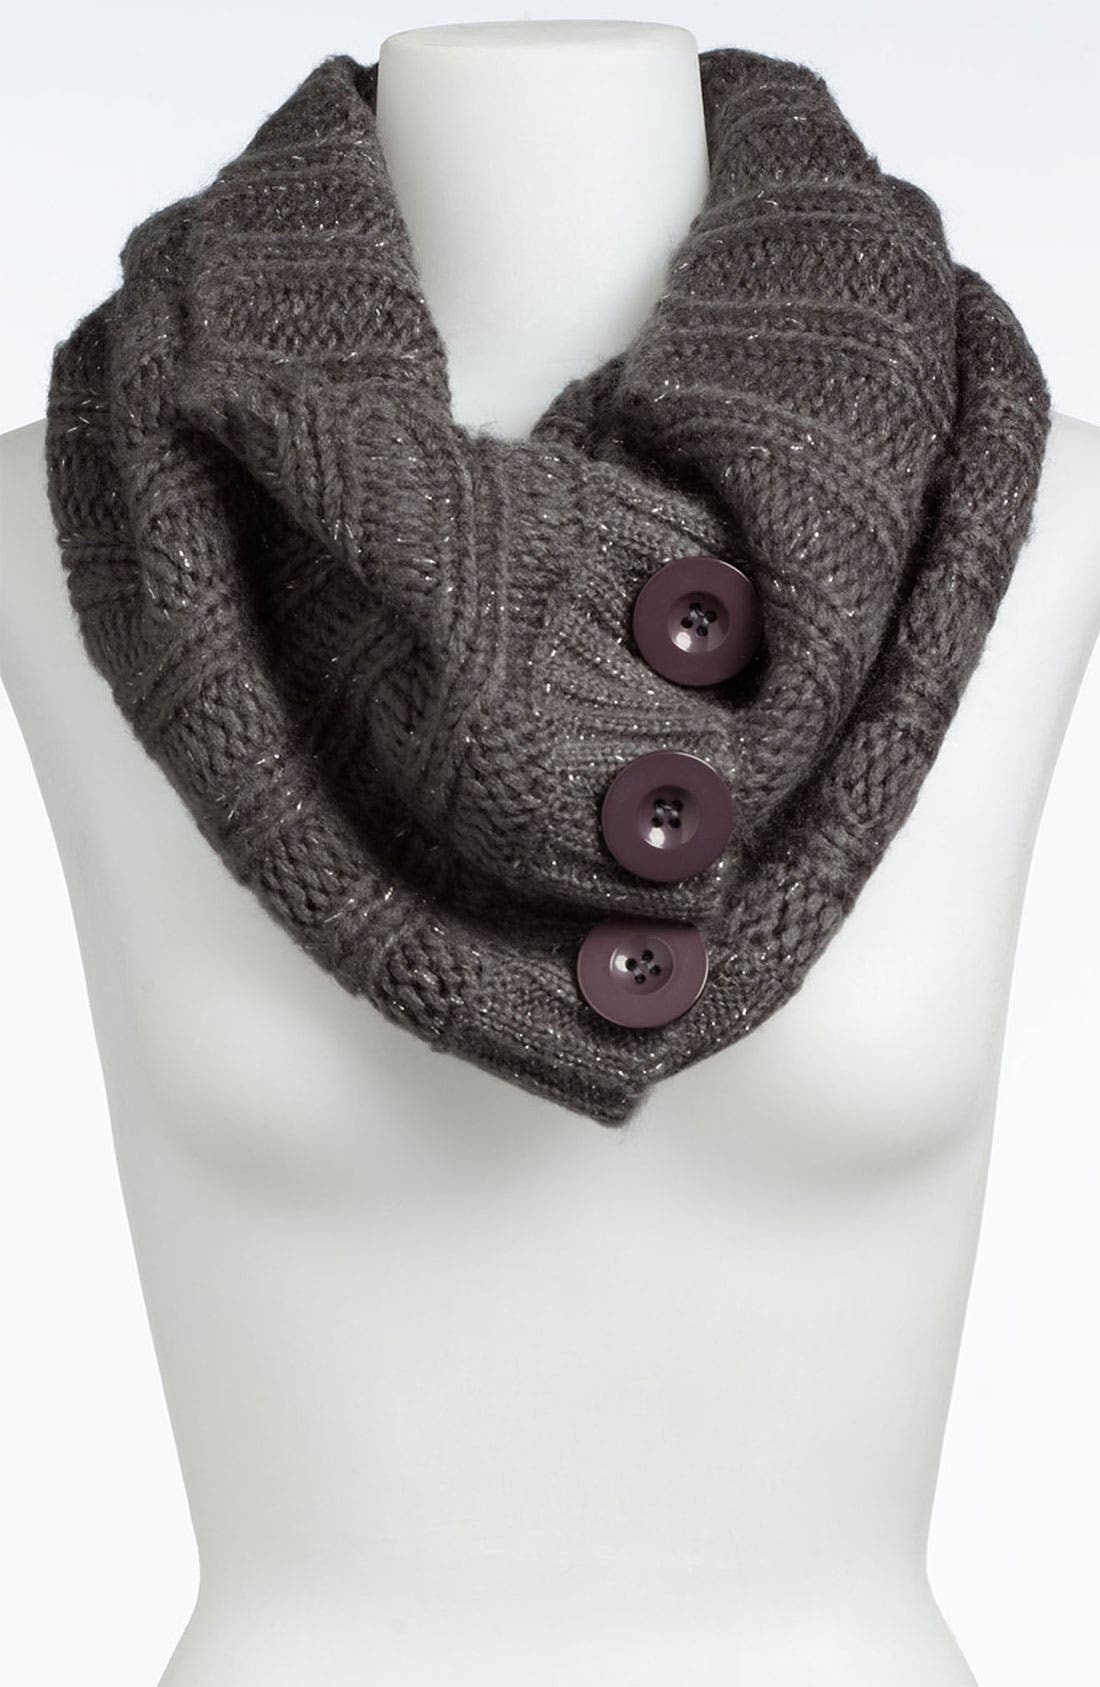 Alternate Image 1 Selected - Steve Madden 'Button Up' Infinity Scarf